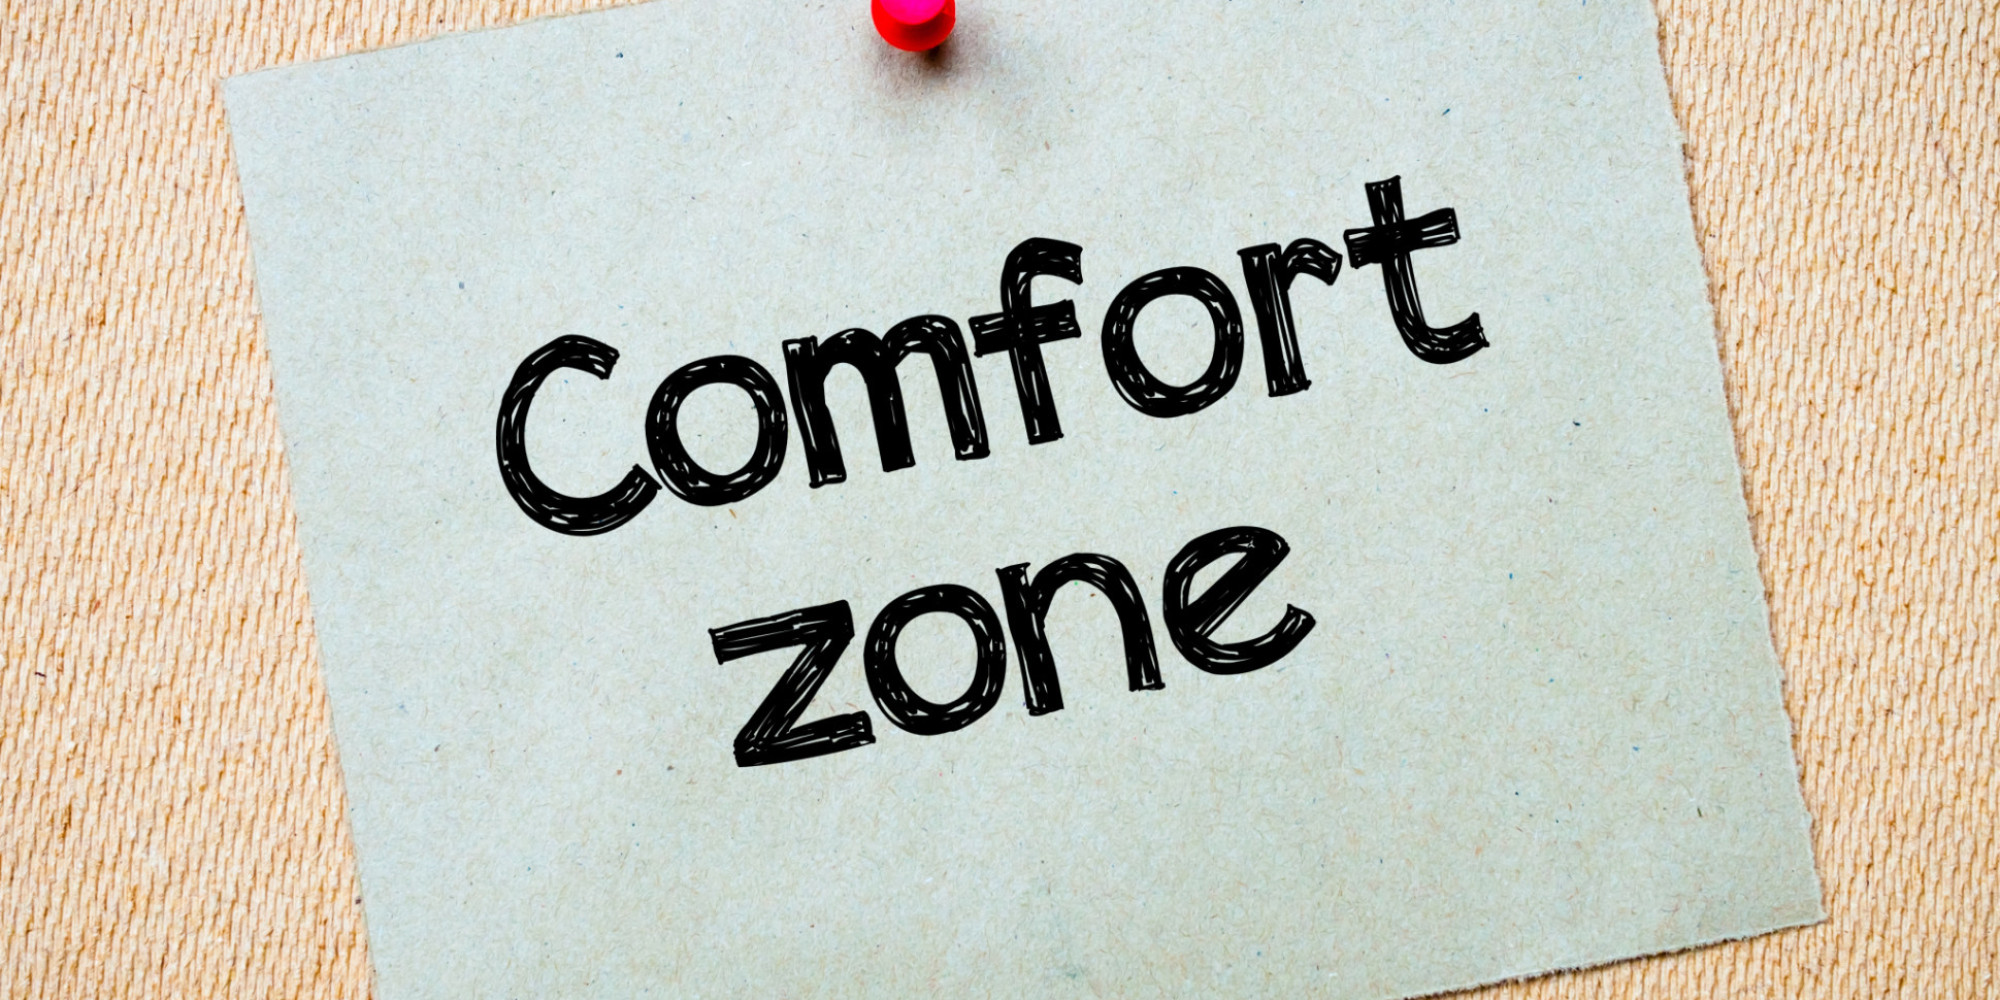 Here be dragons step out of your comfort zone huffpost uk for Comfort zone